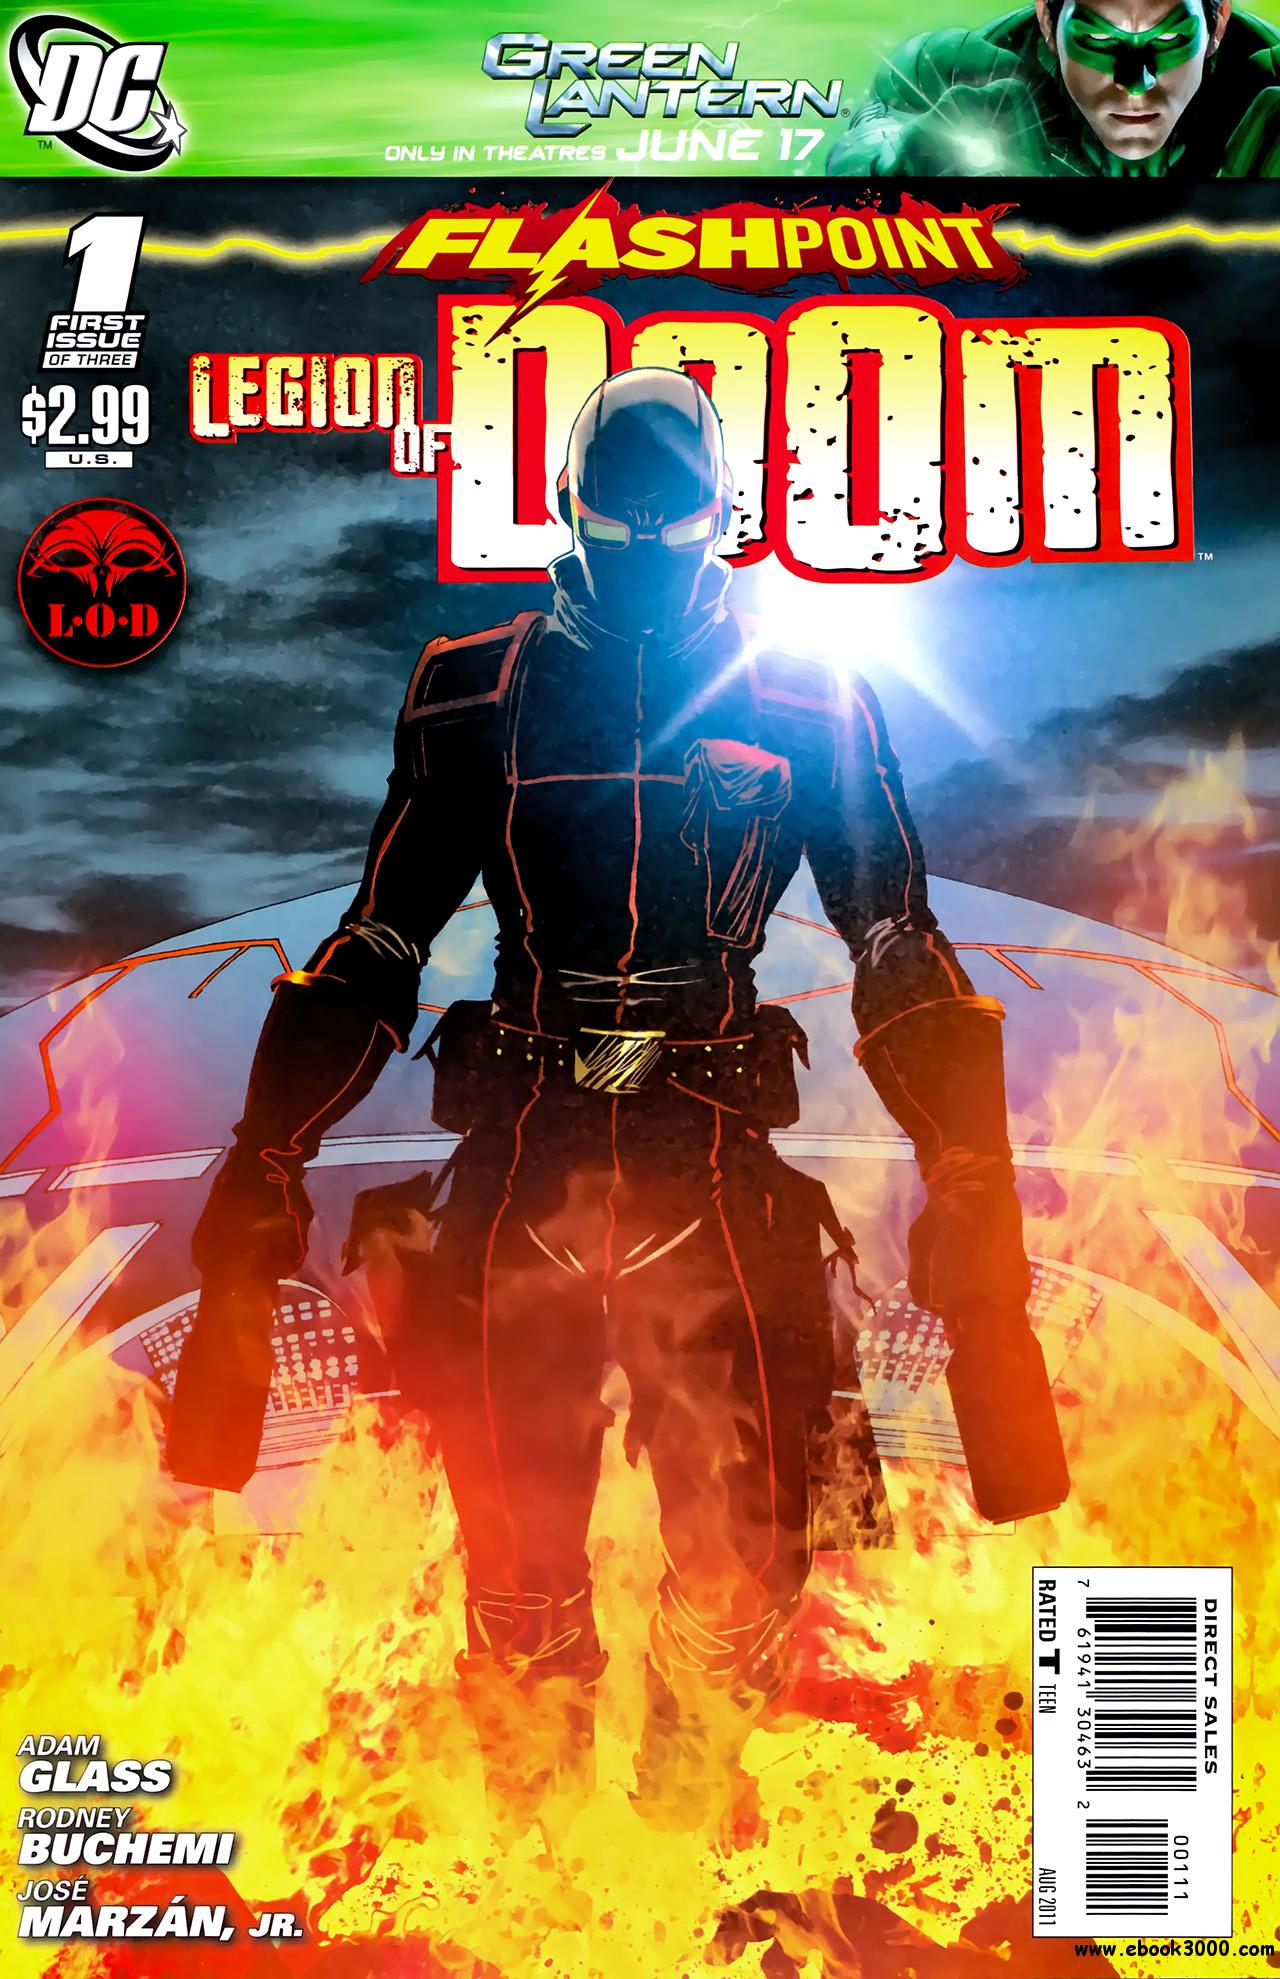 Flashpoint - The Legion of Doom #1 (of 03) (2011) free download